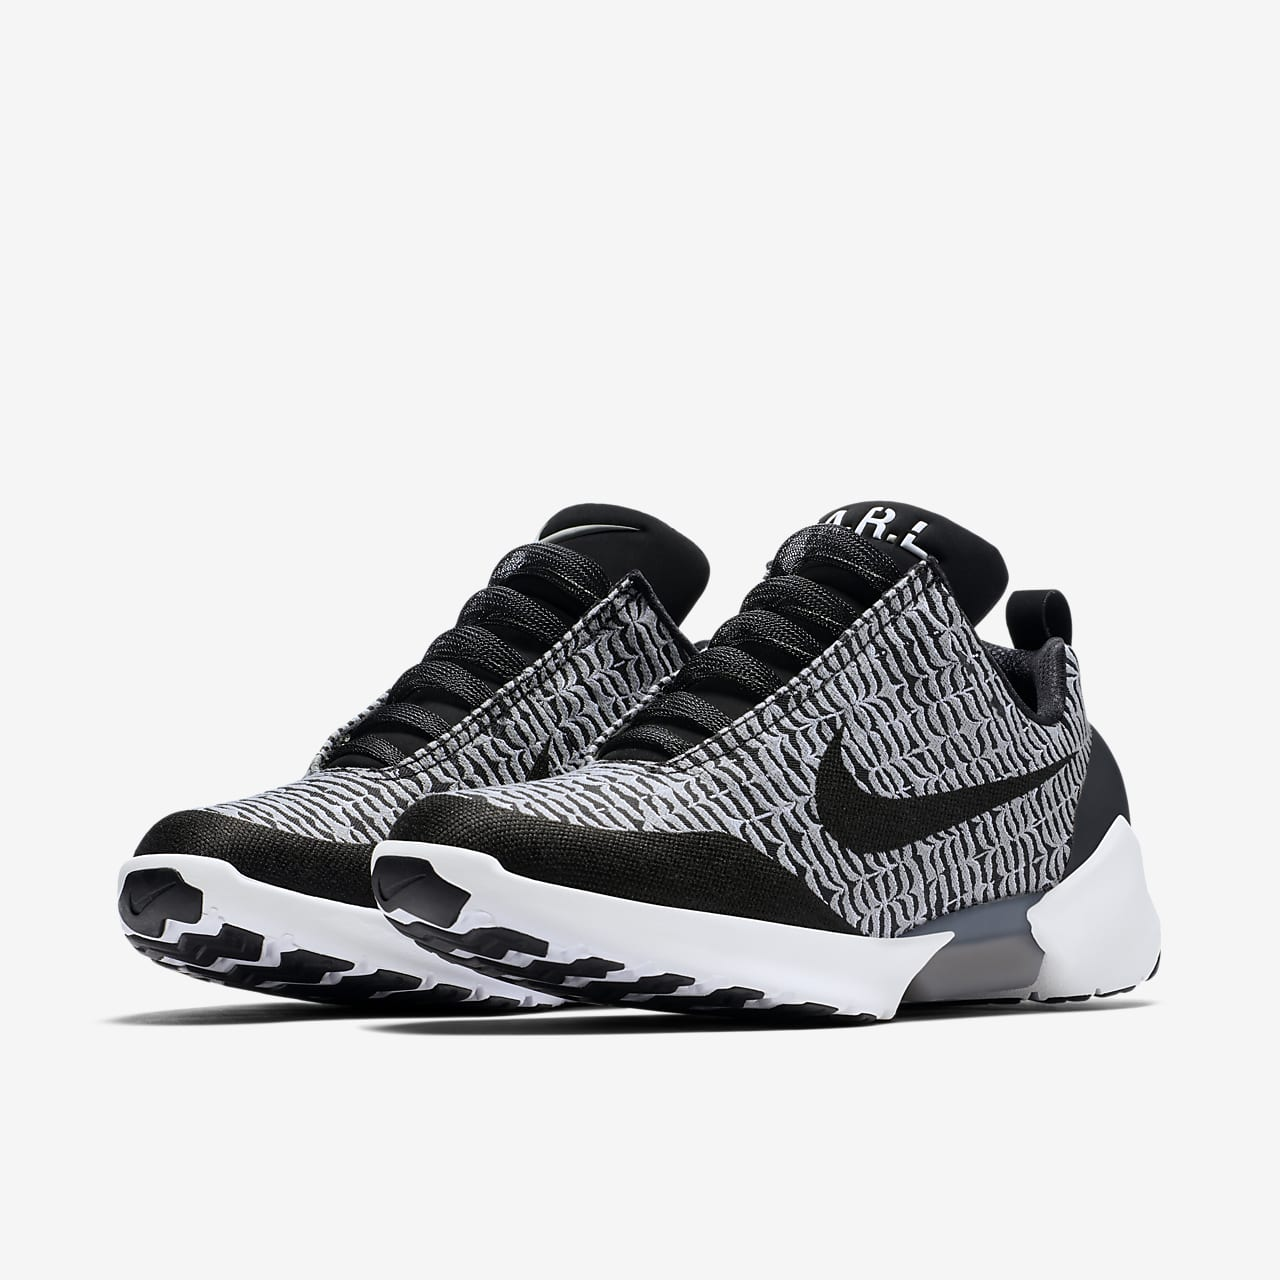 Chaussure Nike HyperAdapt 1.0 pour Homme (Prise UE)